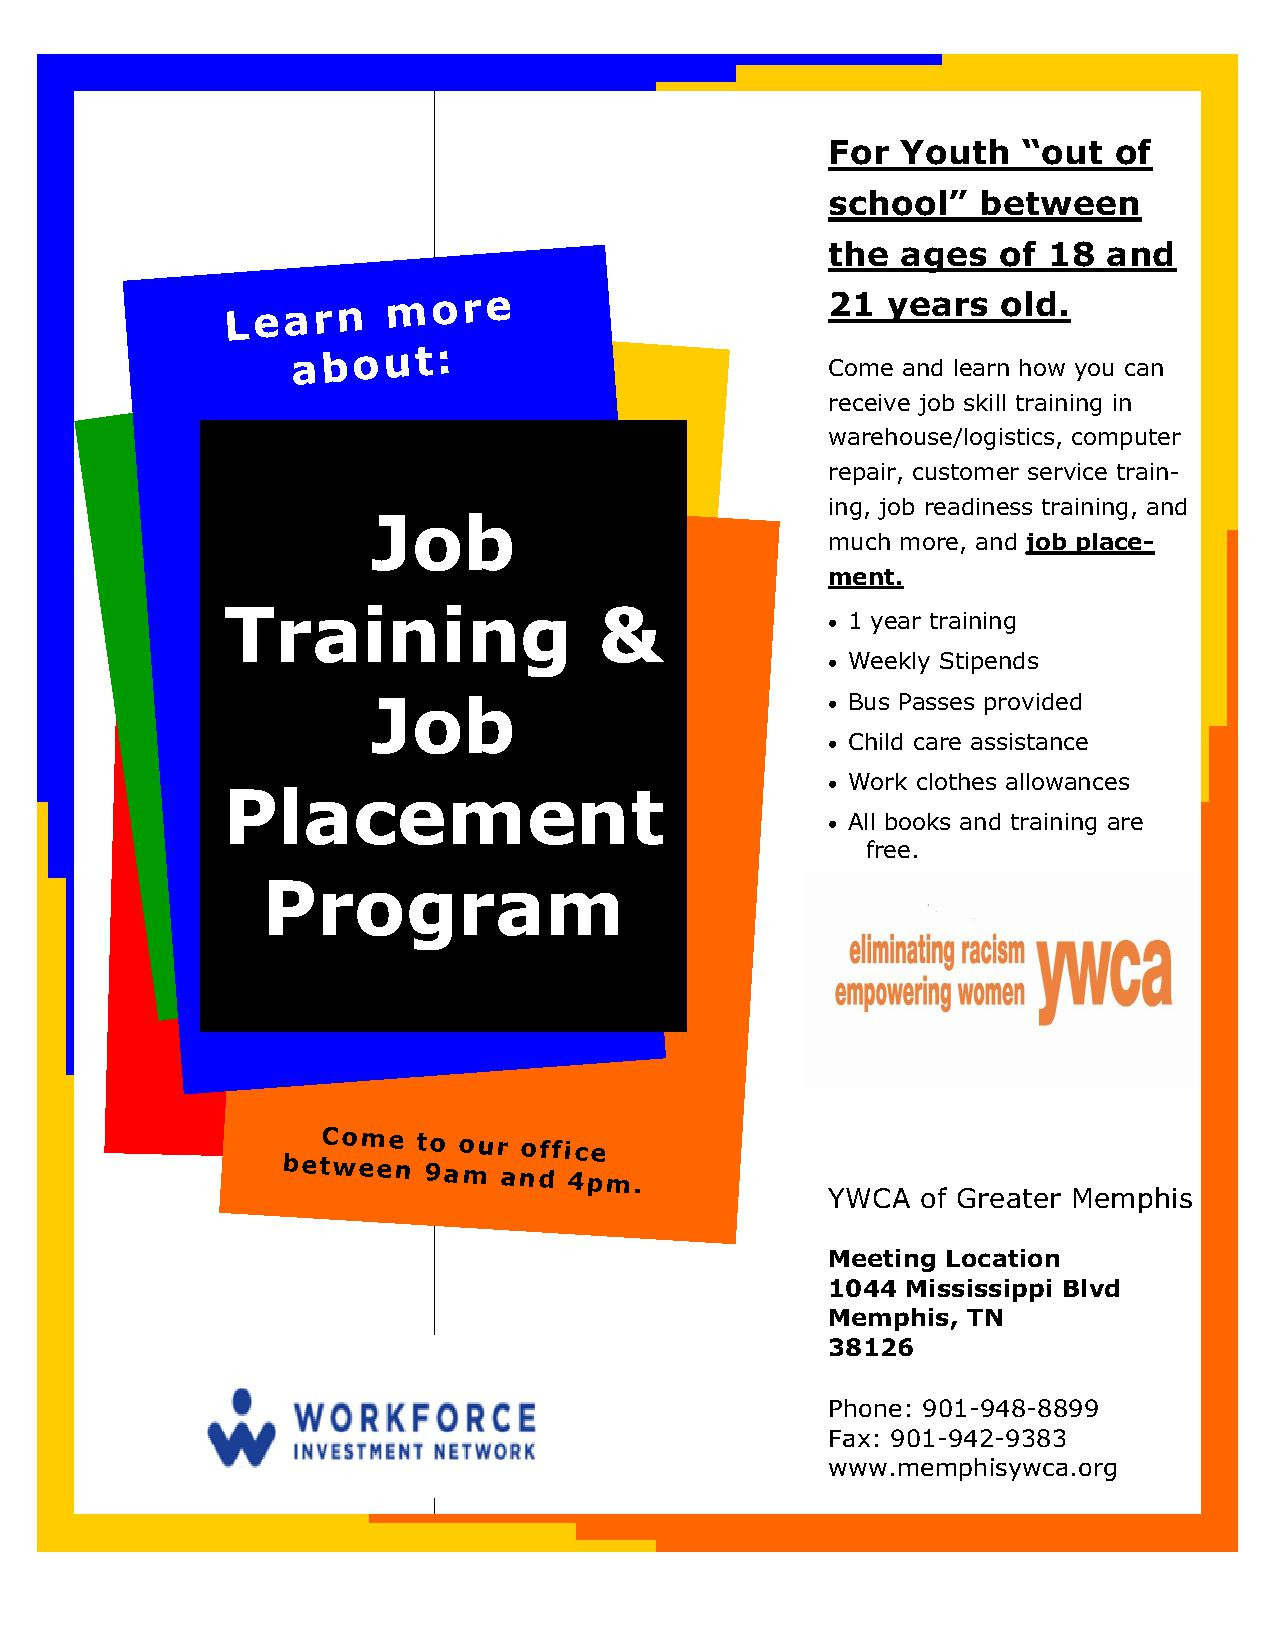 job training and placement for youth 18